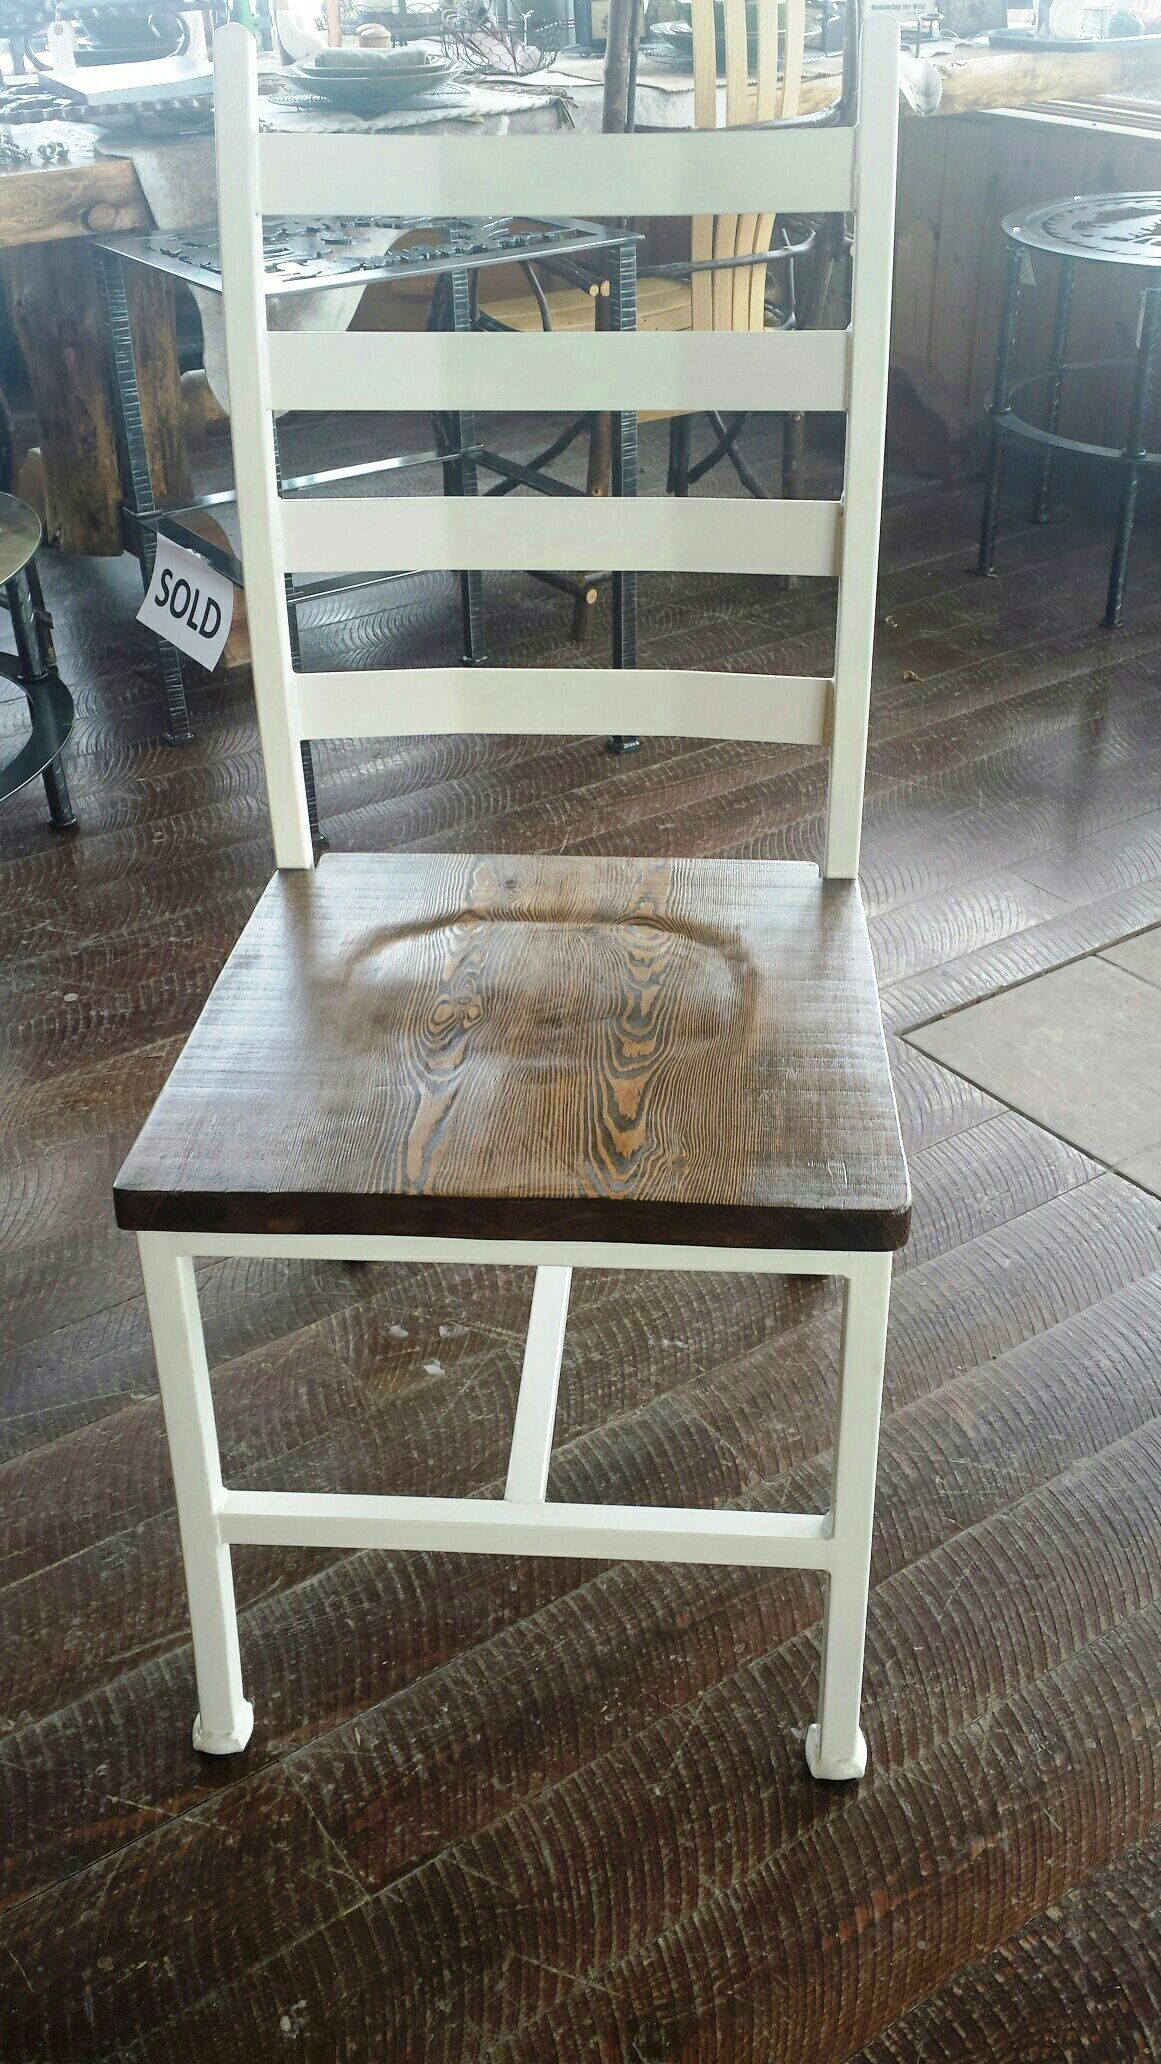 Custom Made Handcrafted Wrought Iron Dining Chair With Wood Seat In A Dark Walnut Finish